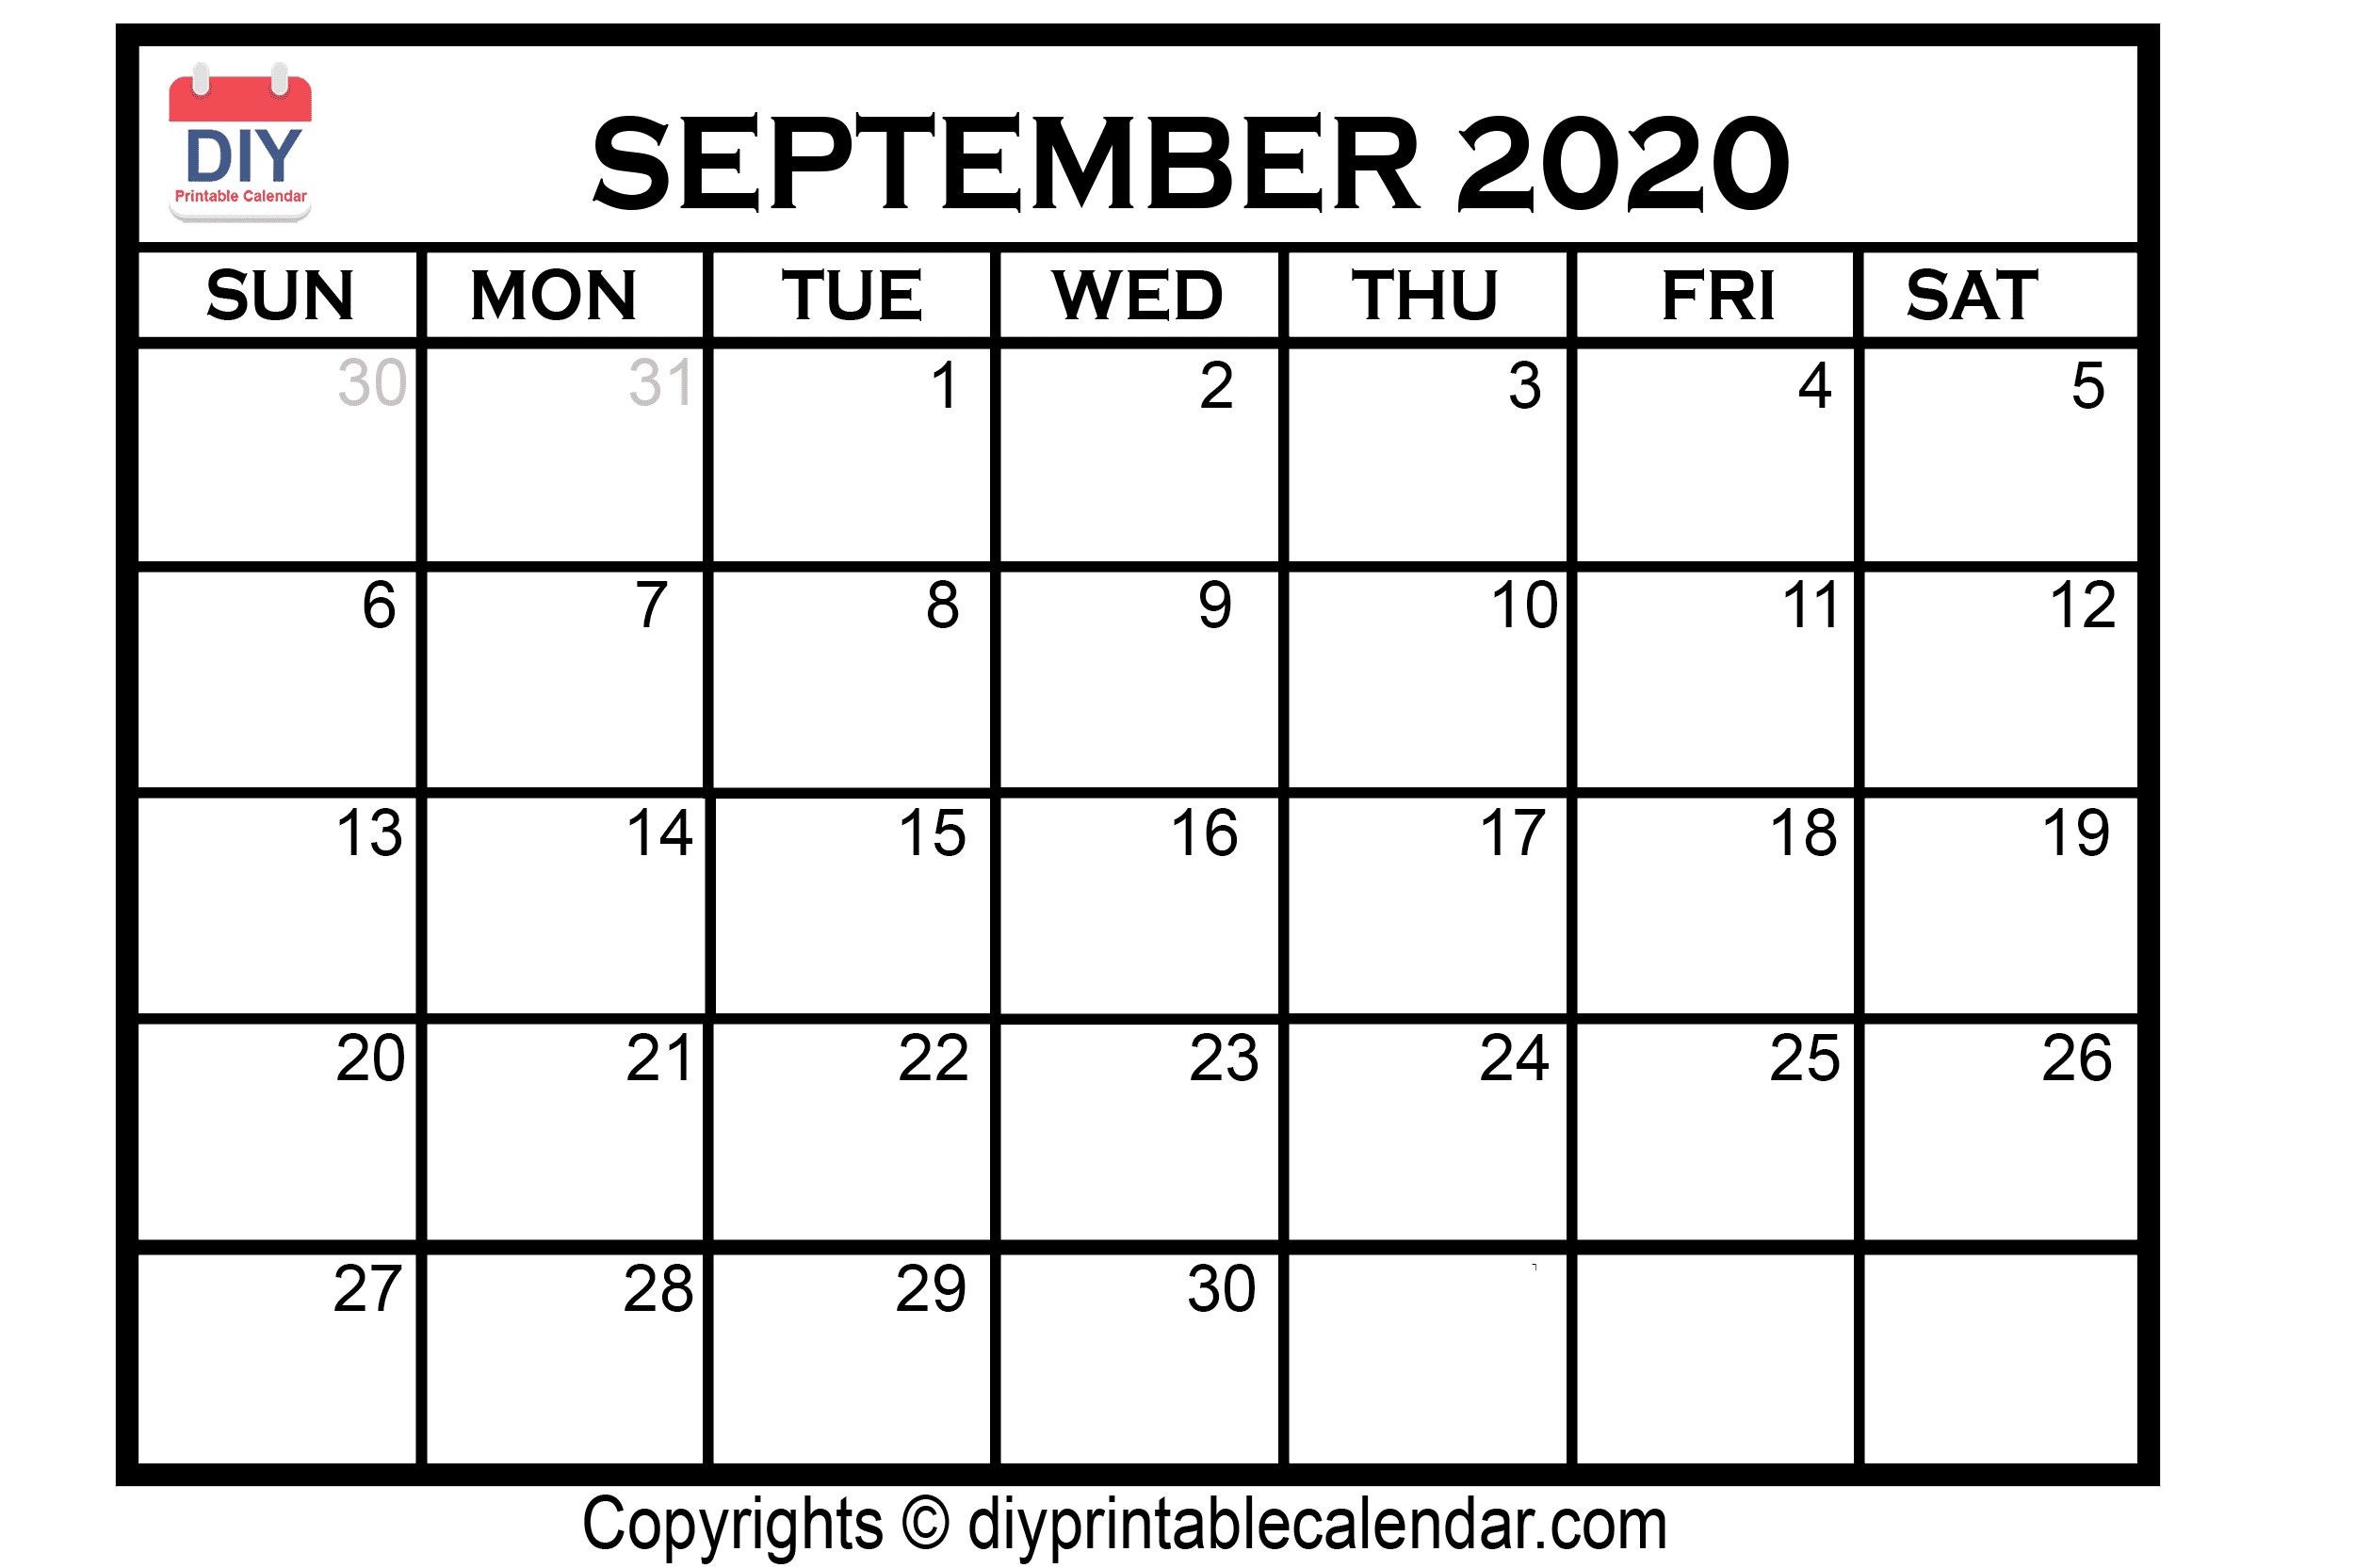 picture about September Printable Calendar titled September 2020 Printable Calendar Template